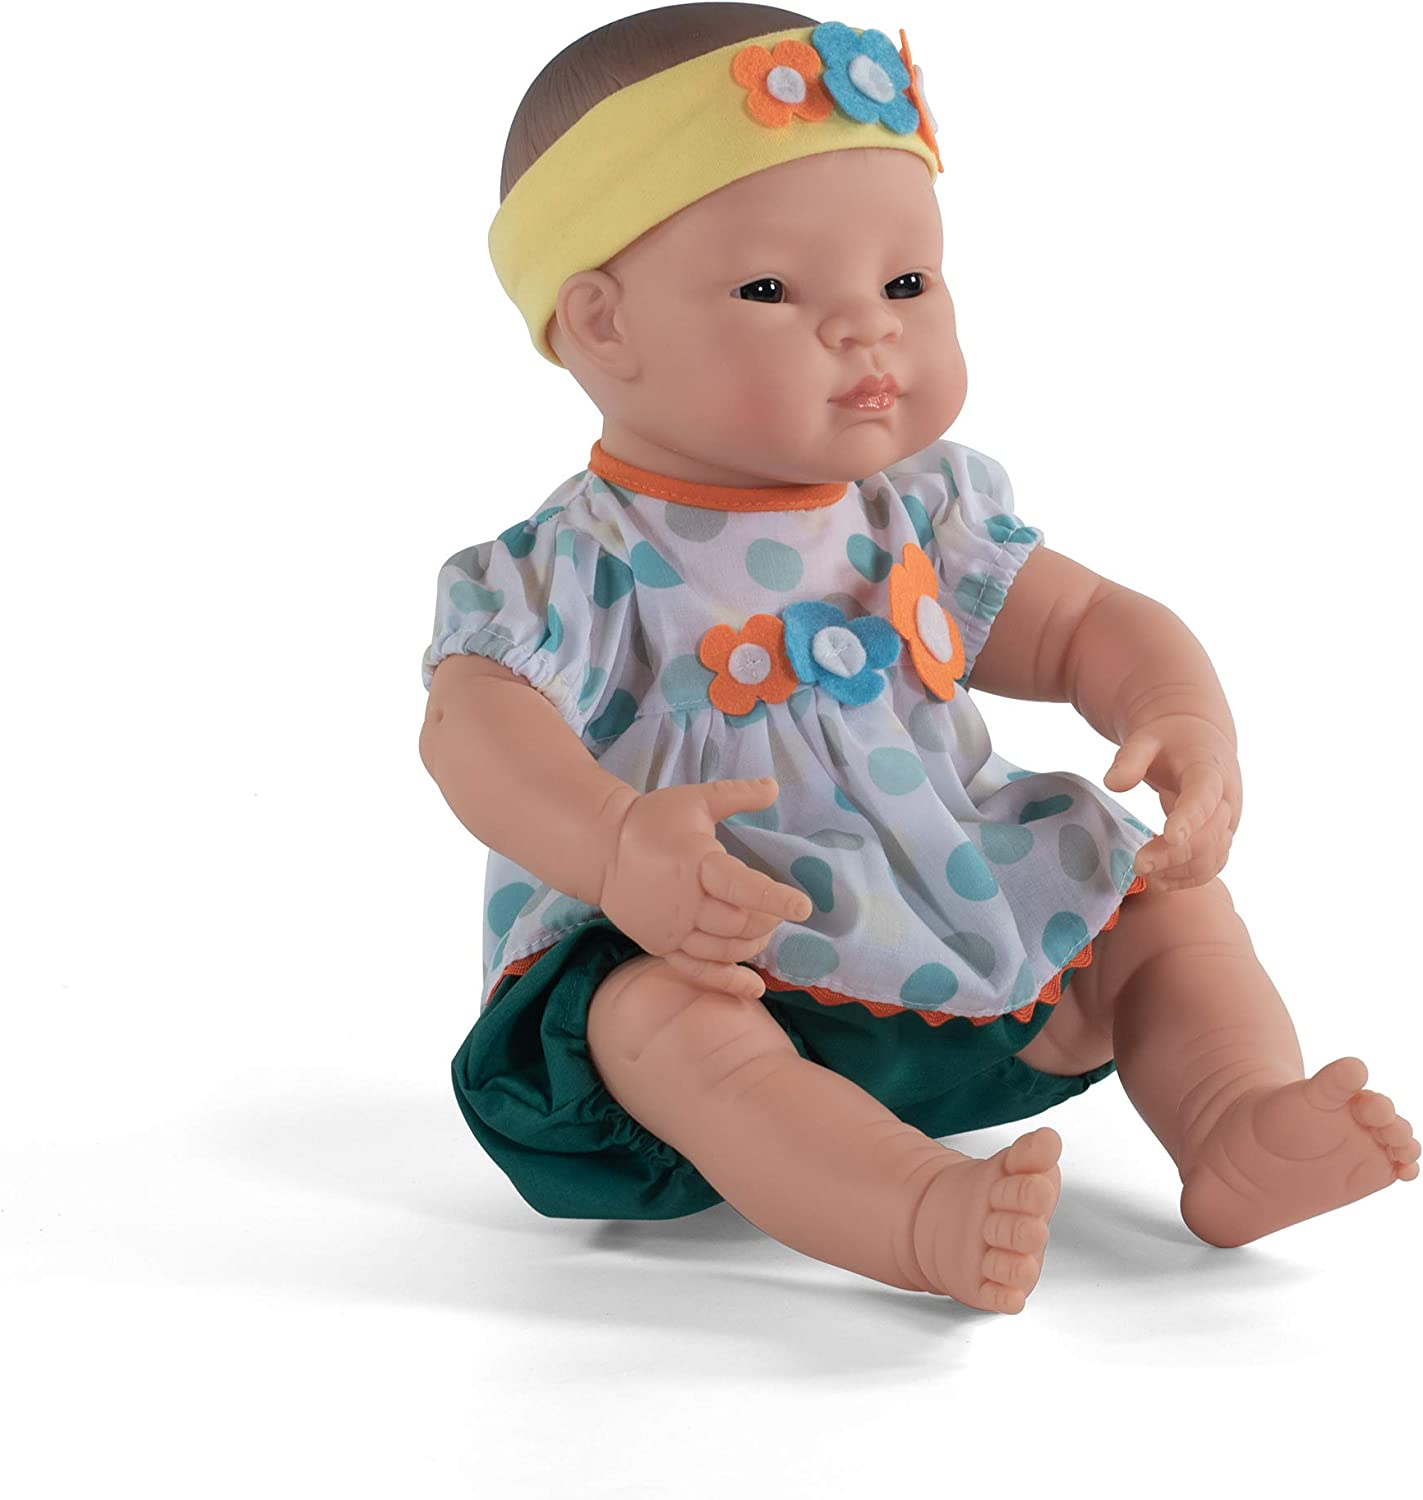 Caucasian Girl 15.75 Anatomically Correct Newborn Baby Doll Miniland Educational